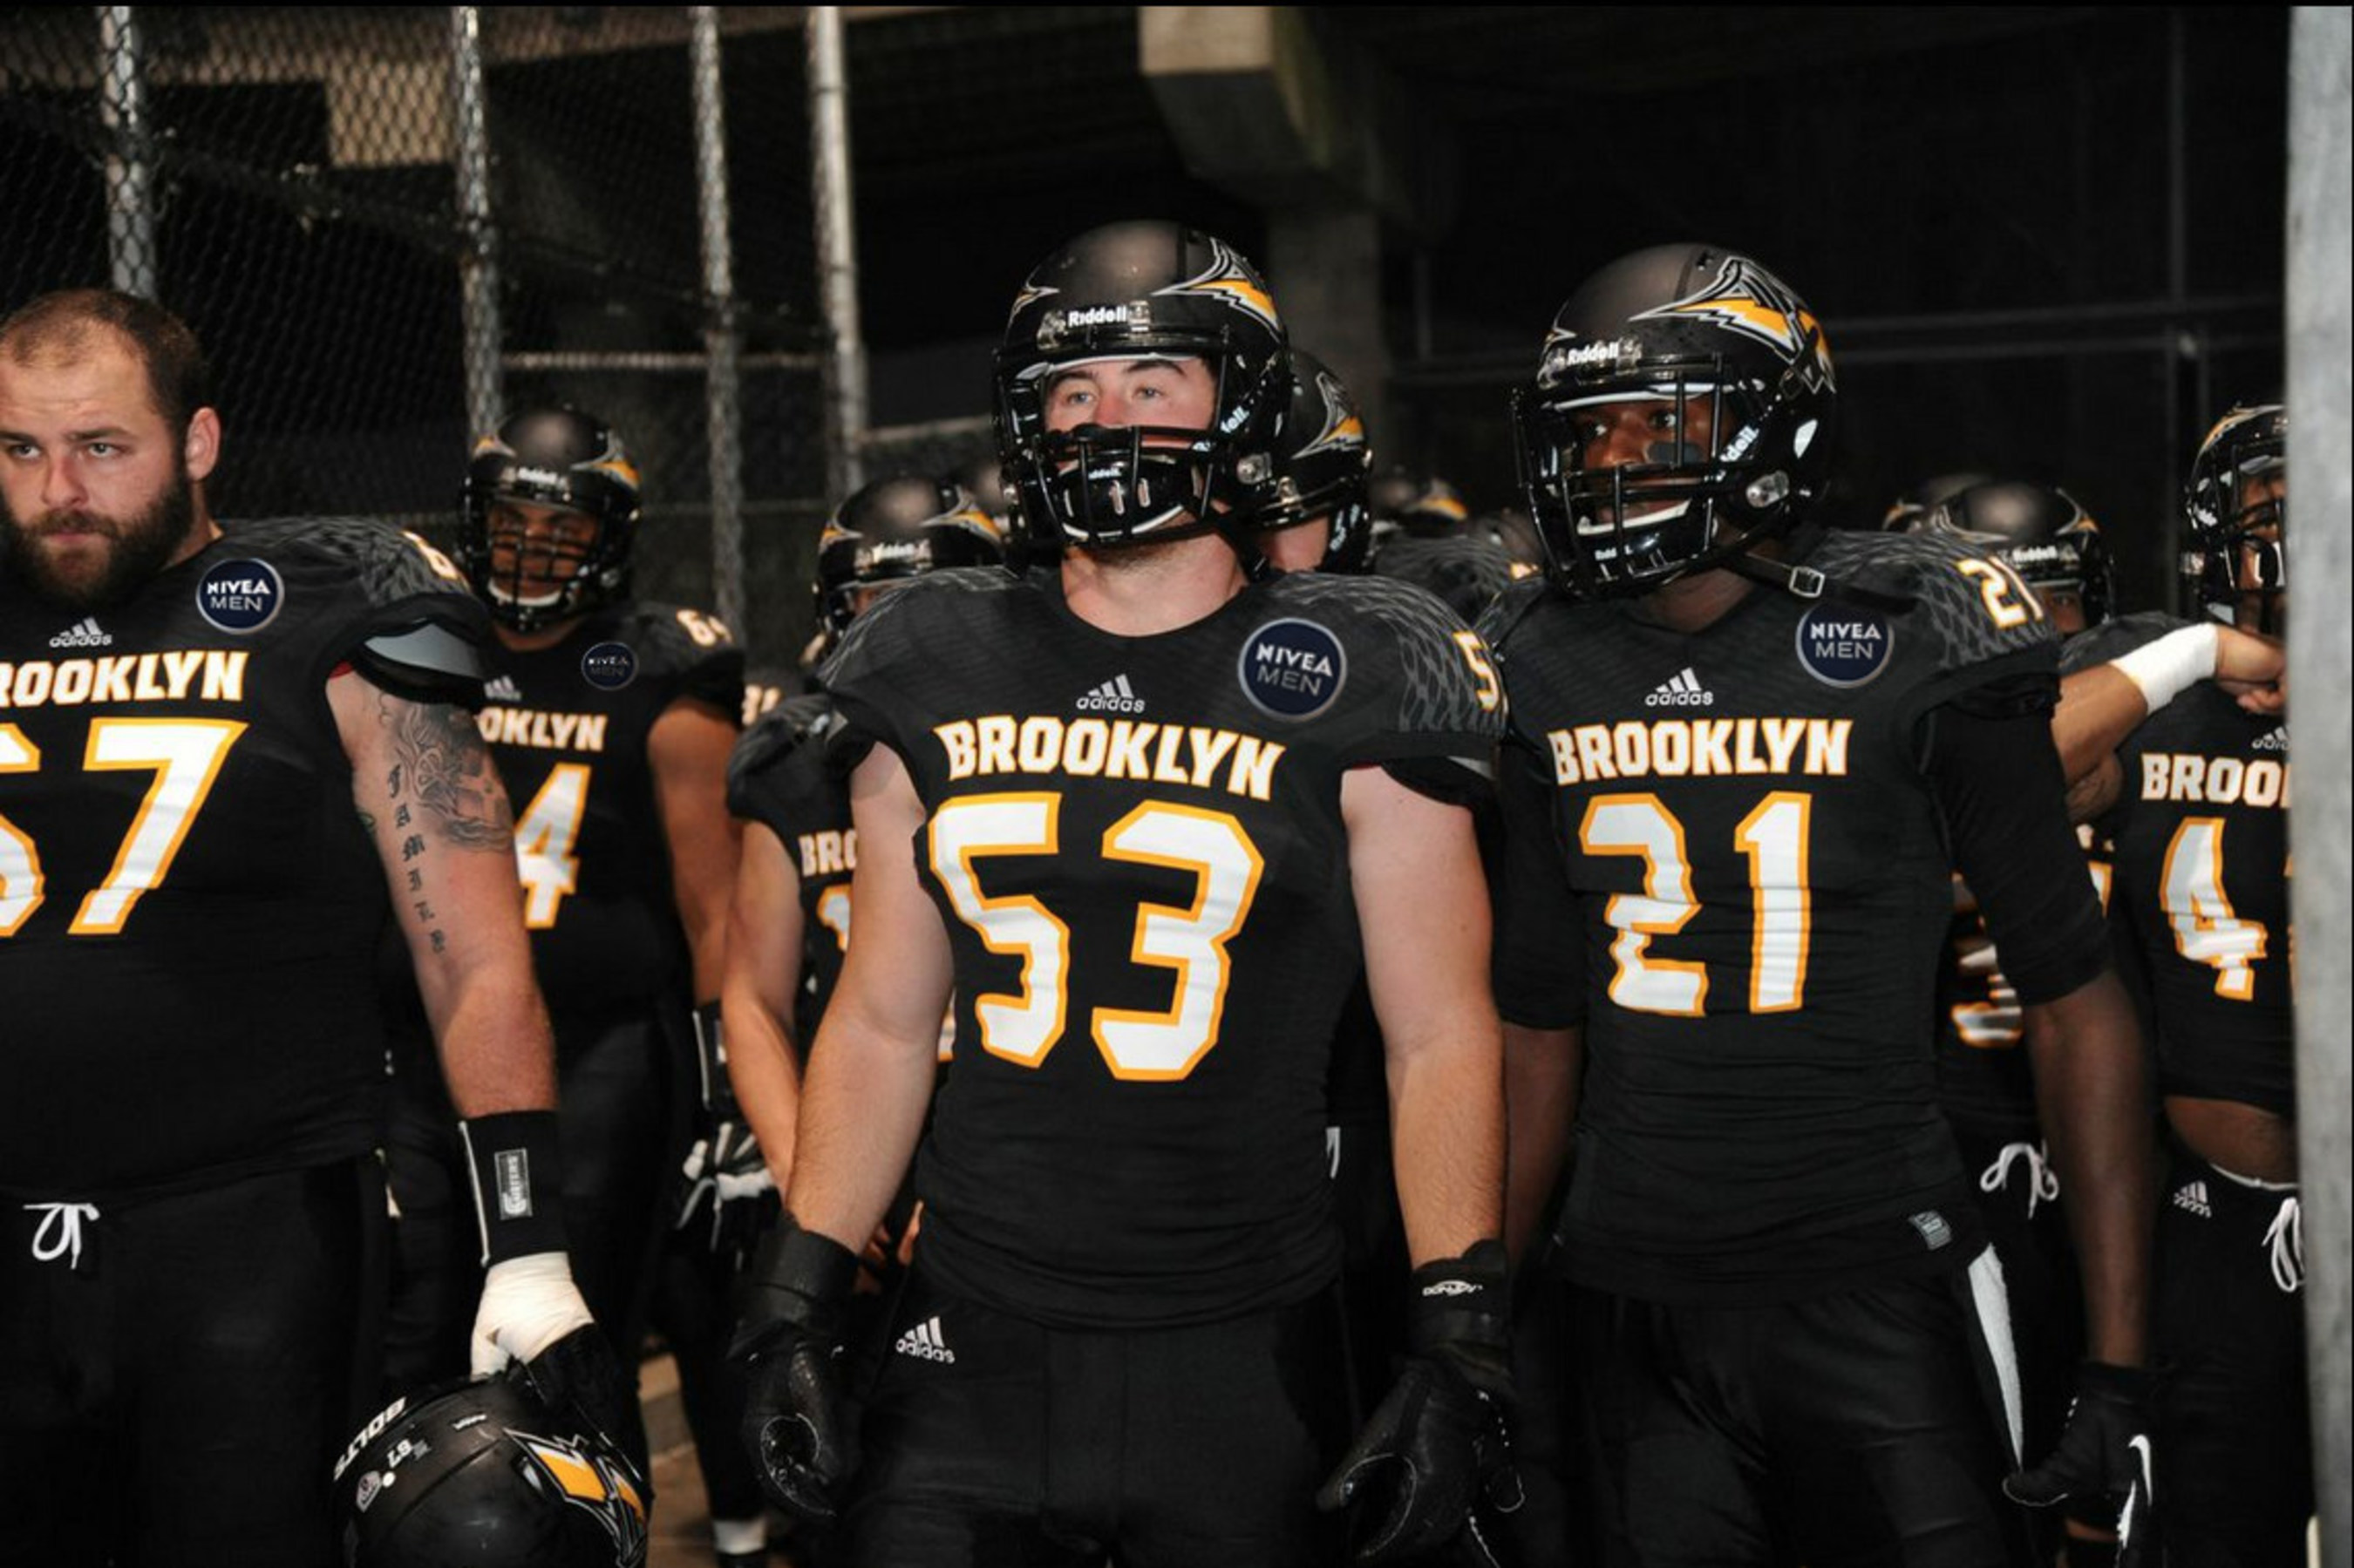 NIVEA MEN Signs Deal as Presenting Sponsor of the FXFL